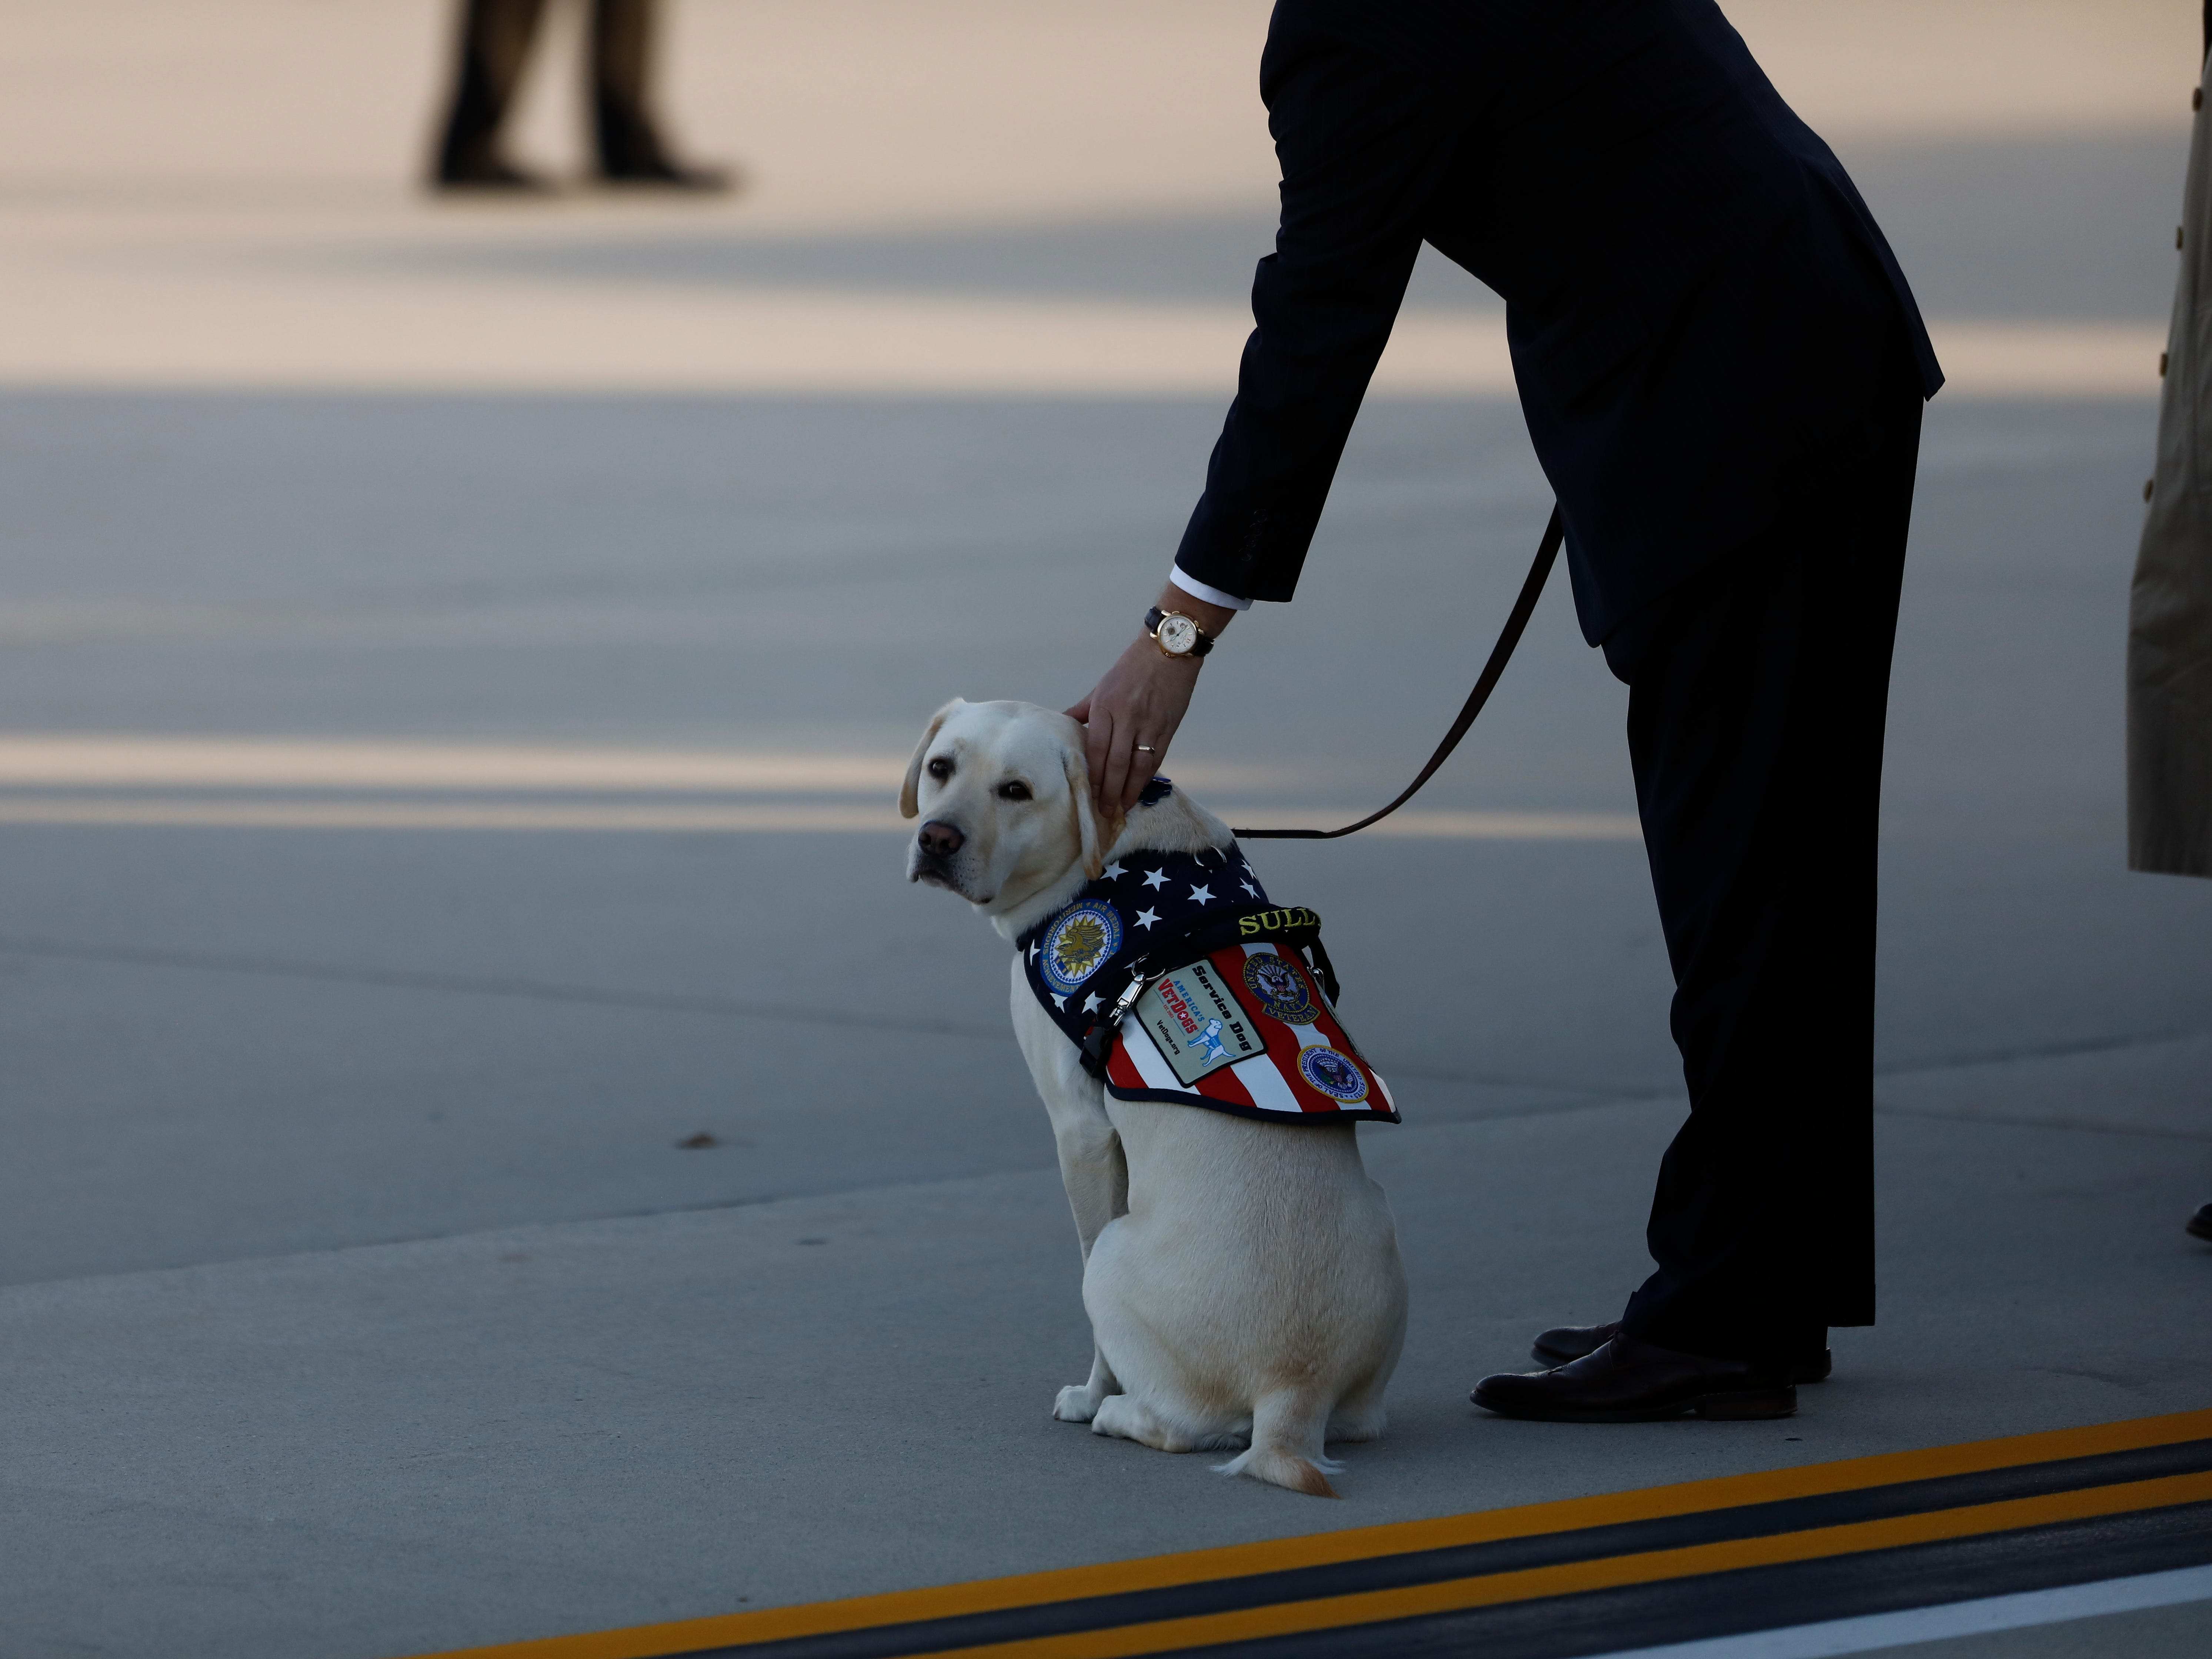 epa07206894 Sully, former US President George H. W. Bush's service dog on the tarmac before Joint service members of a military casket team carry the casket of former US President George H. W. Bush from Special Air Mission 41 to the waiting hearse at Joint Base Andrews, USA, 03 December 2018. Bush will lie in state in the Capitol Rotunda before his state funeral at the Washington National Cathedral 05 December. George H.W. Bush, the 41st President of the United States (1989-1993), died at the age of 94 on 30 November 2018 at his home in Texas.  EPA-EFE/TING SHEN ORG XMIT: TSX07